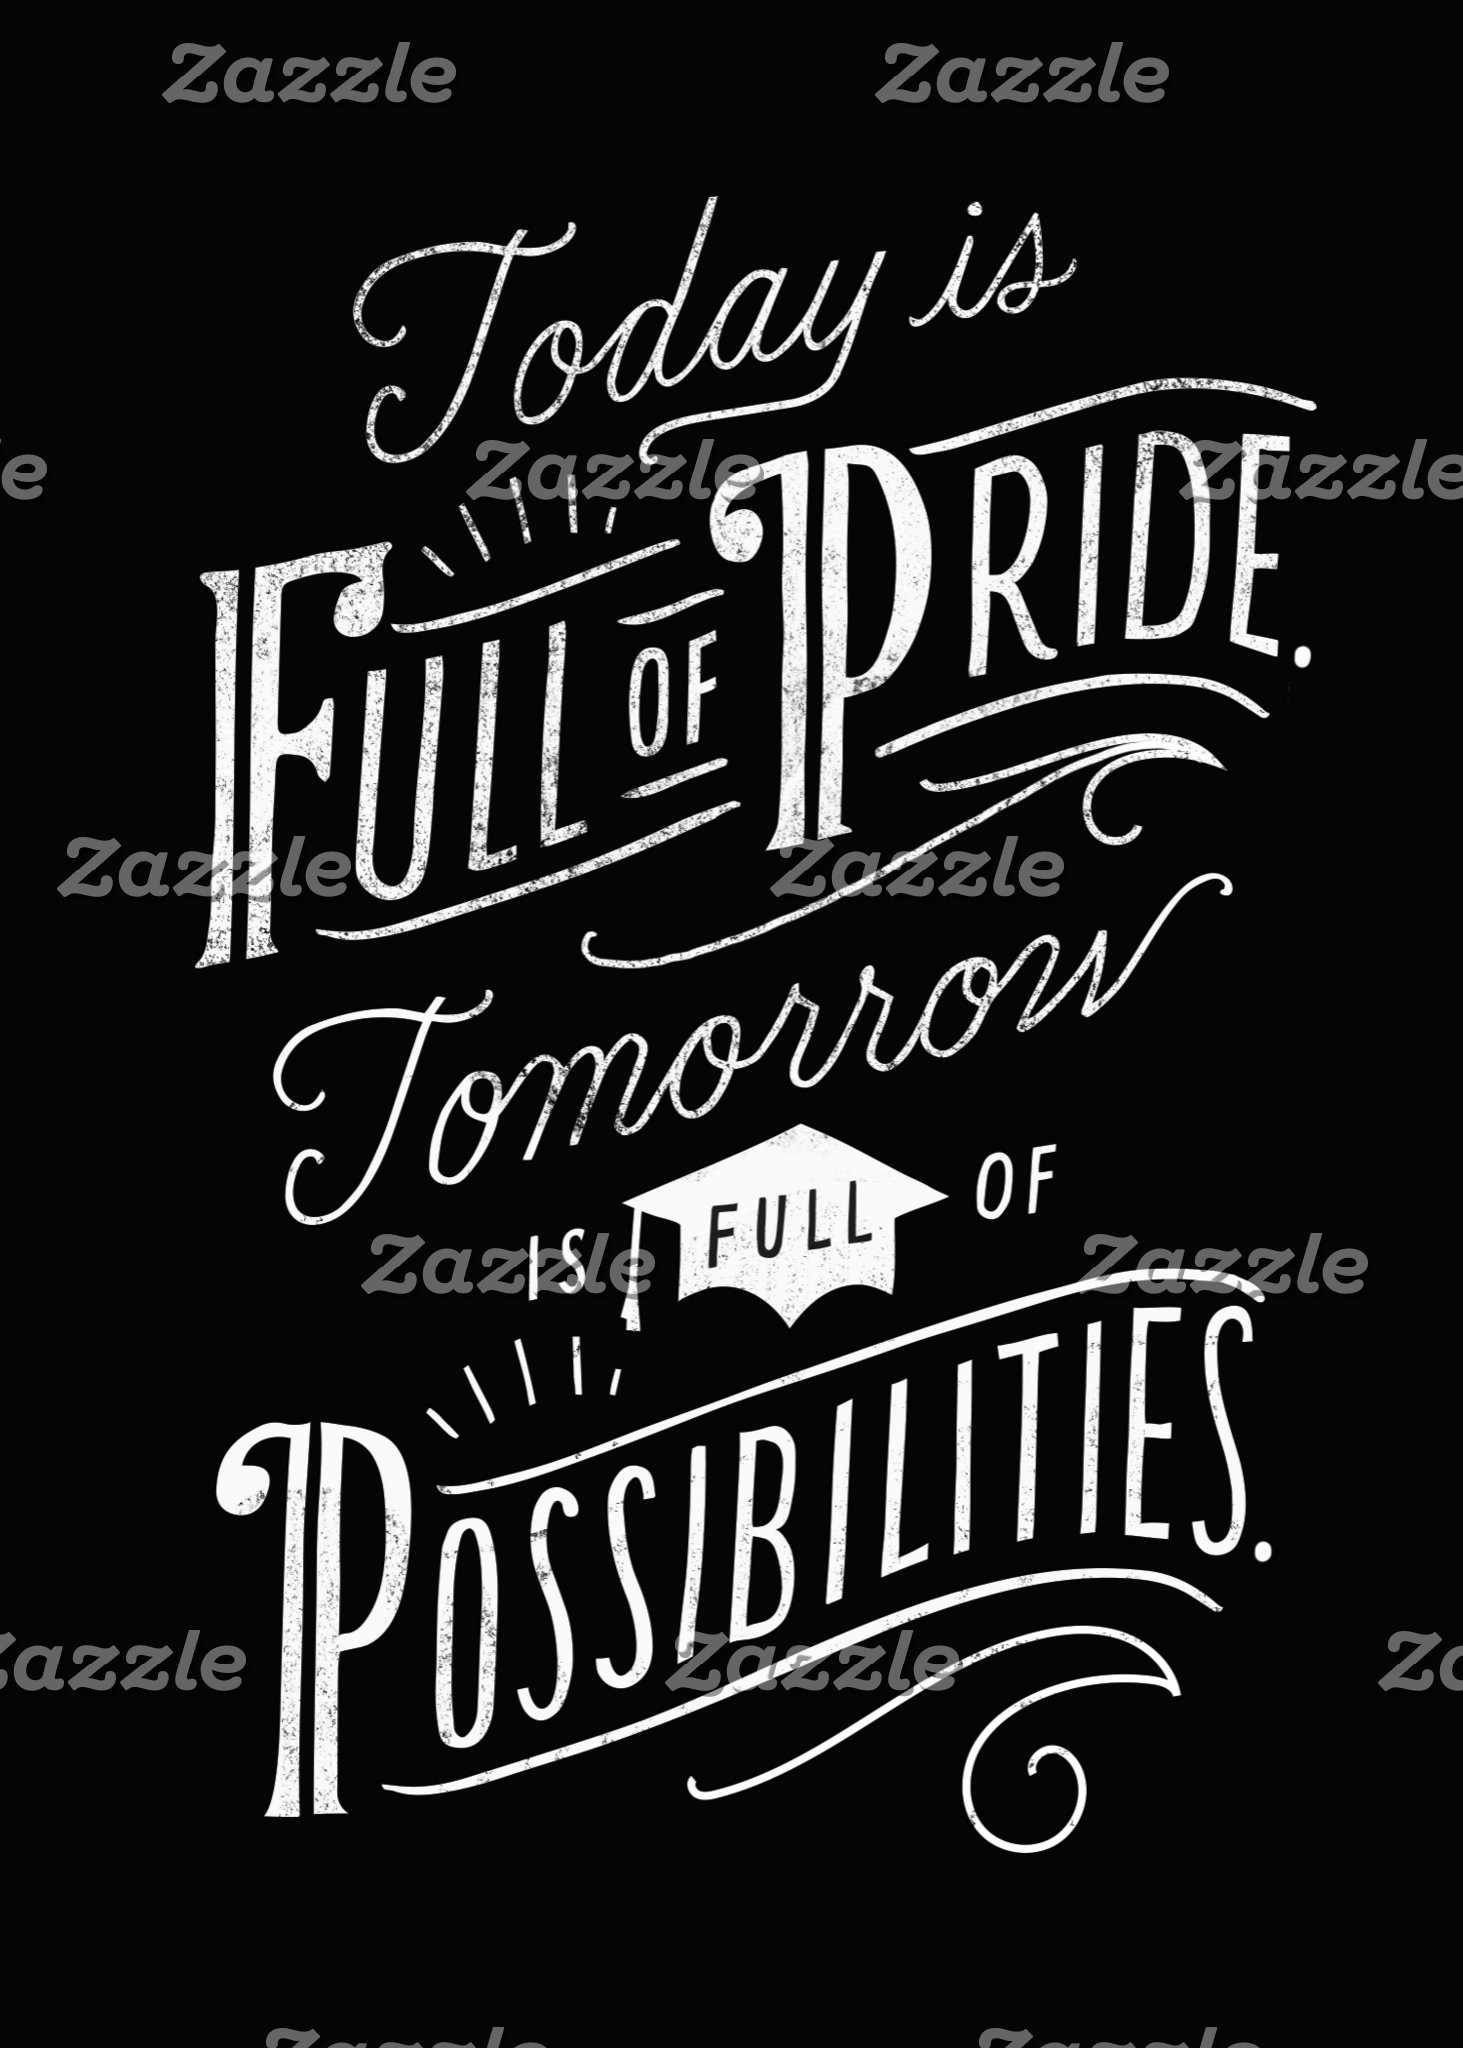 Tomorrow Is Full Of Possibilities